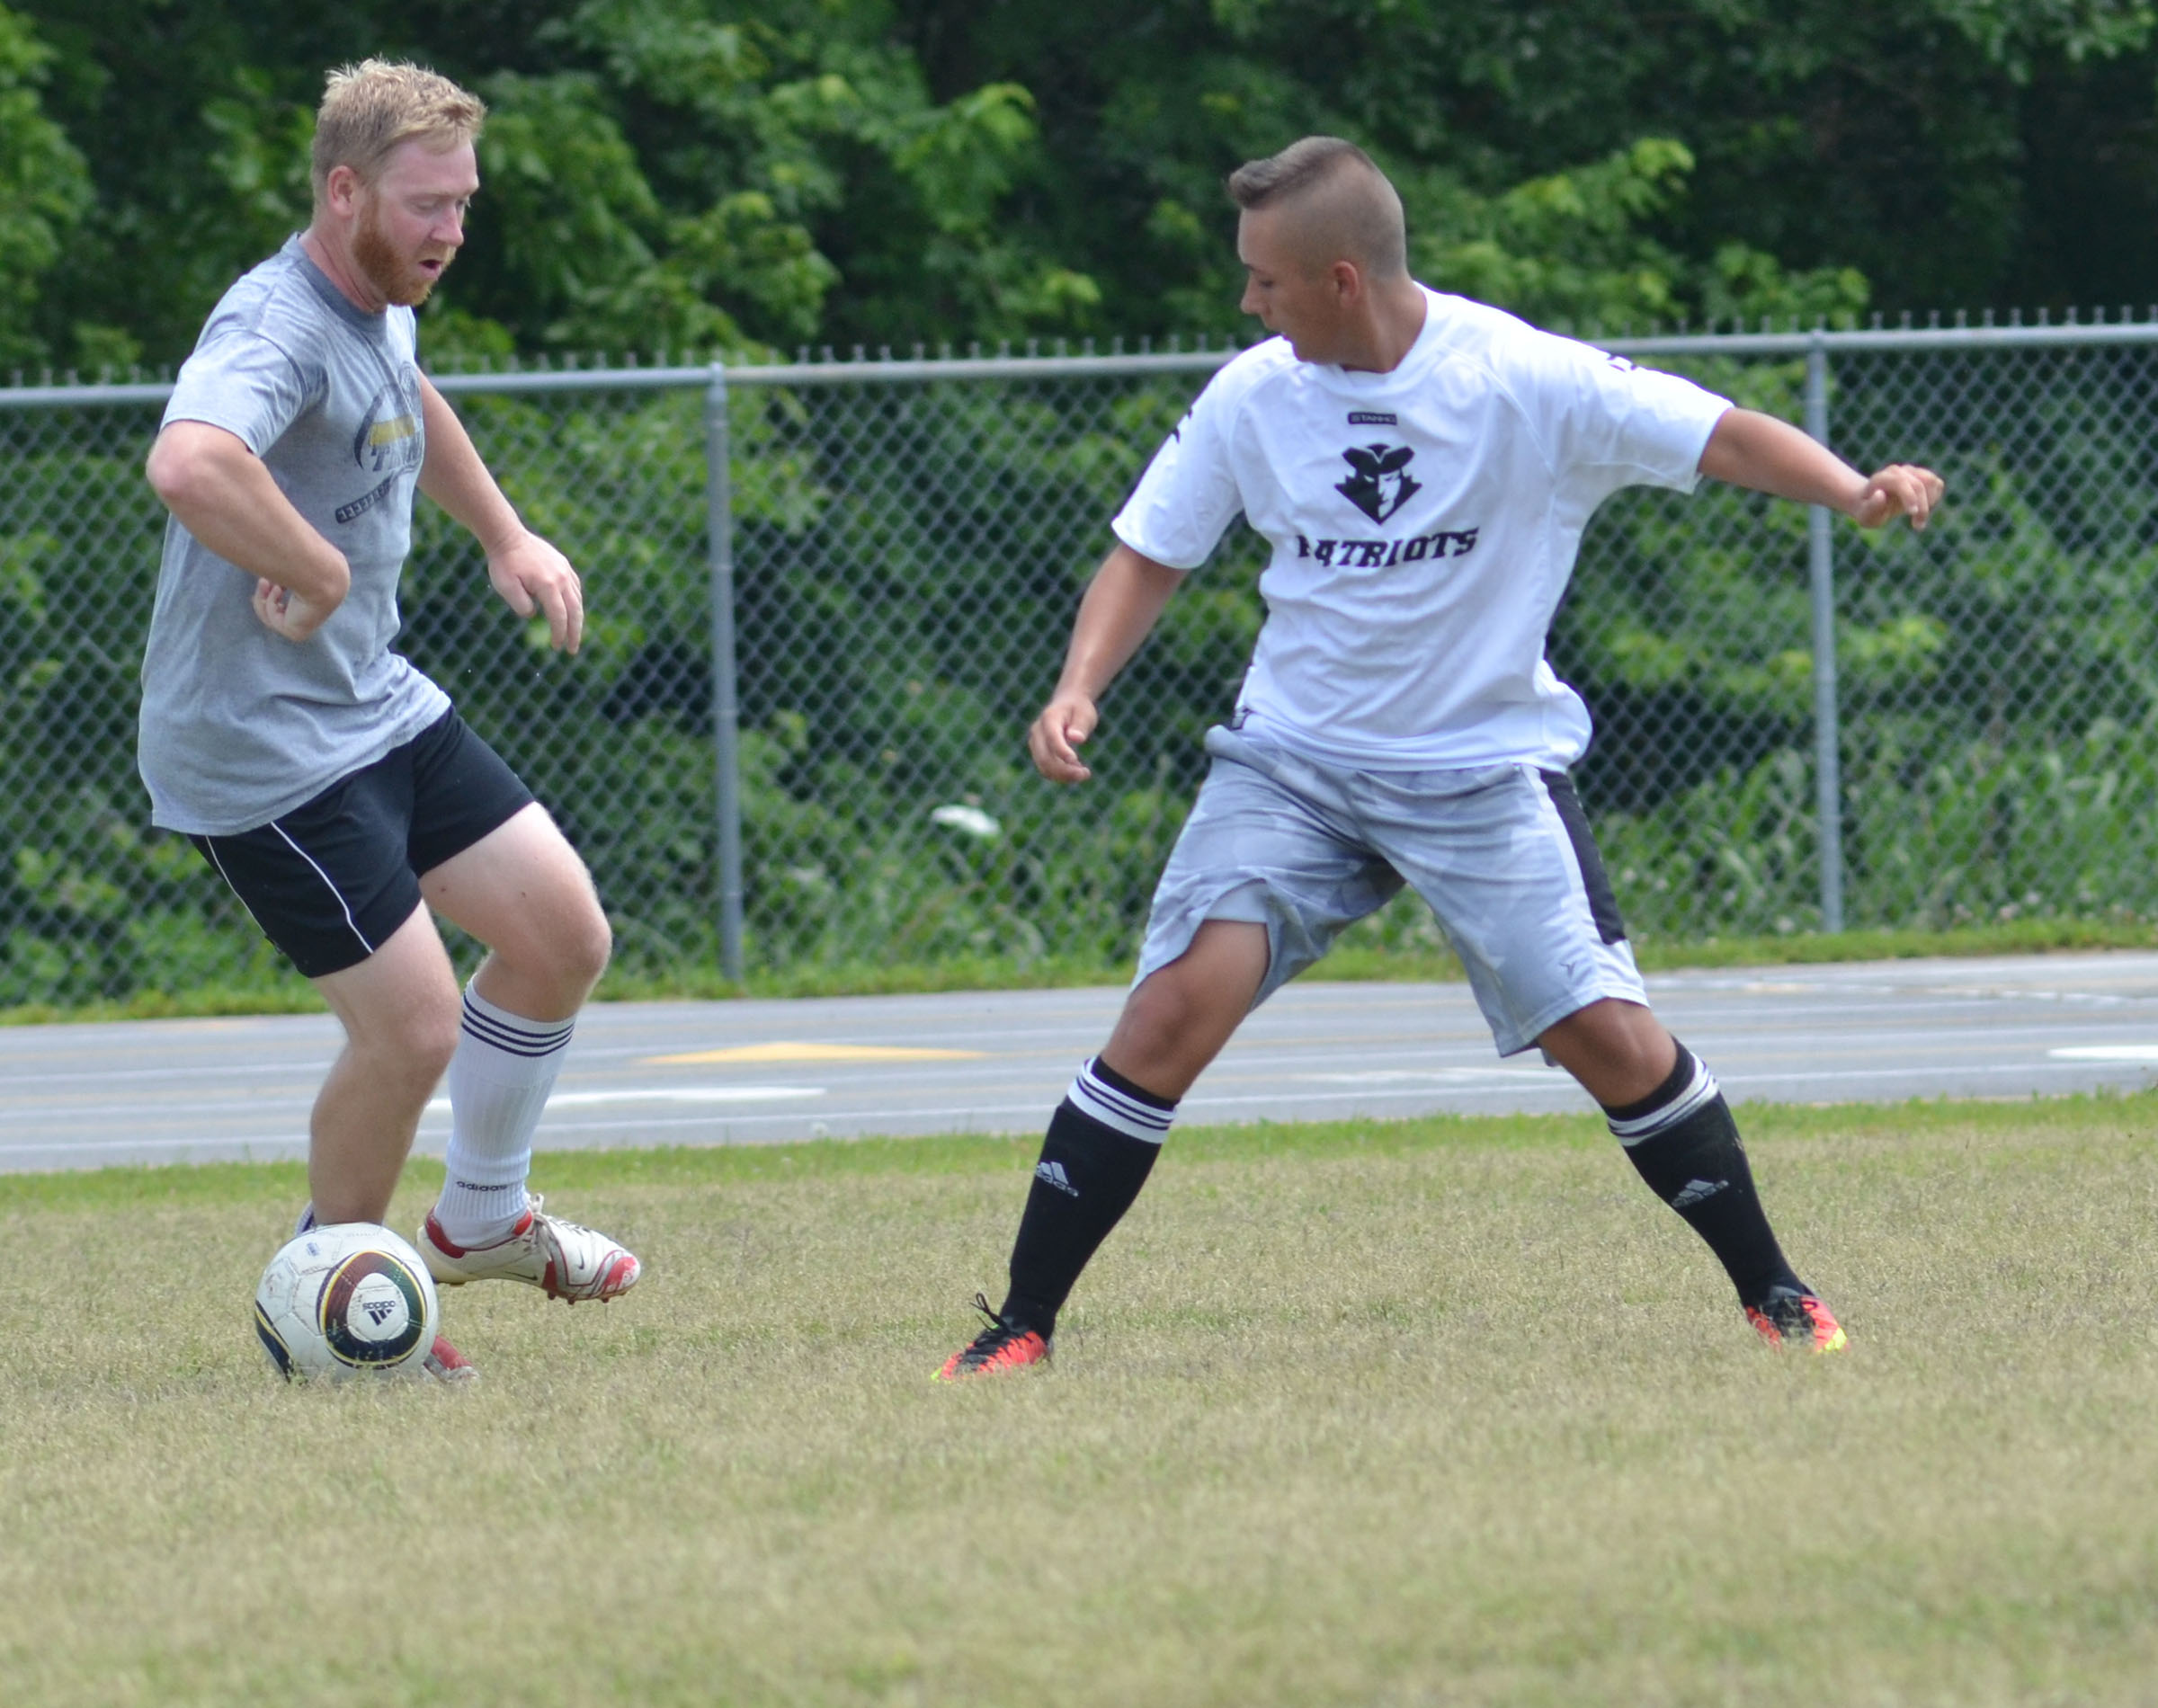 CHS soccer alumni player Luke Lawless, at left, battles senior Cody Davis.